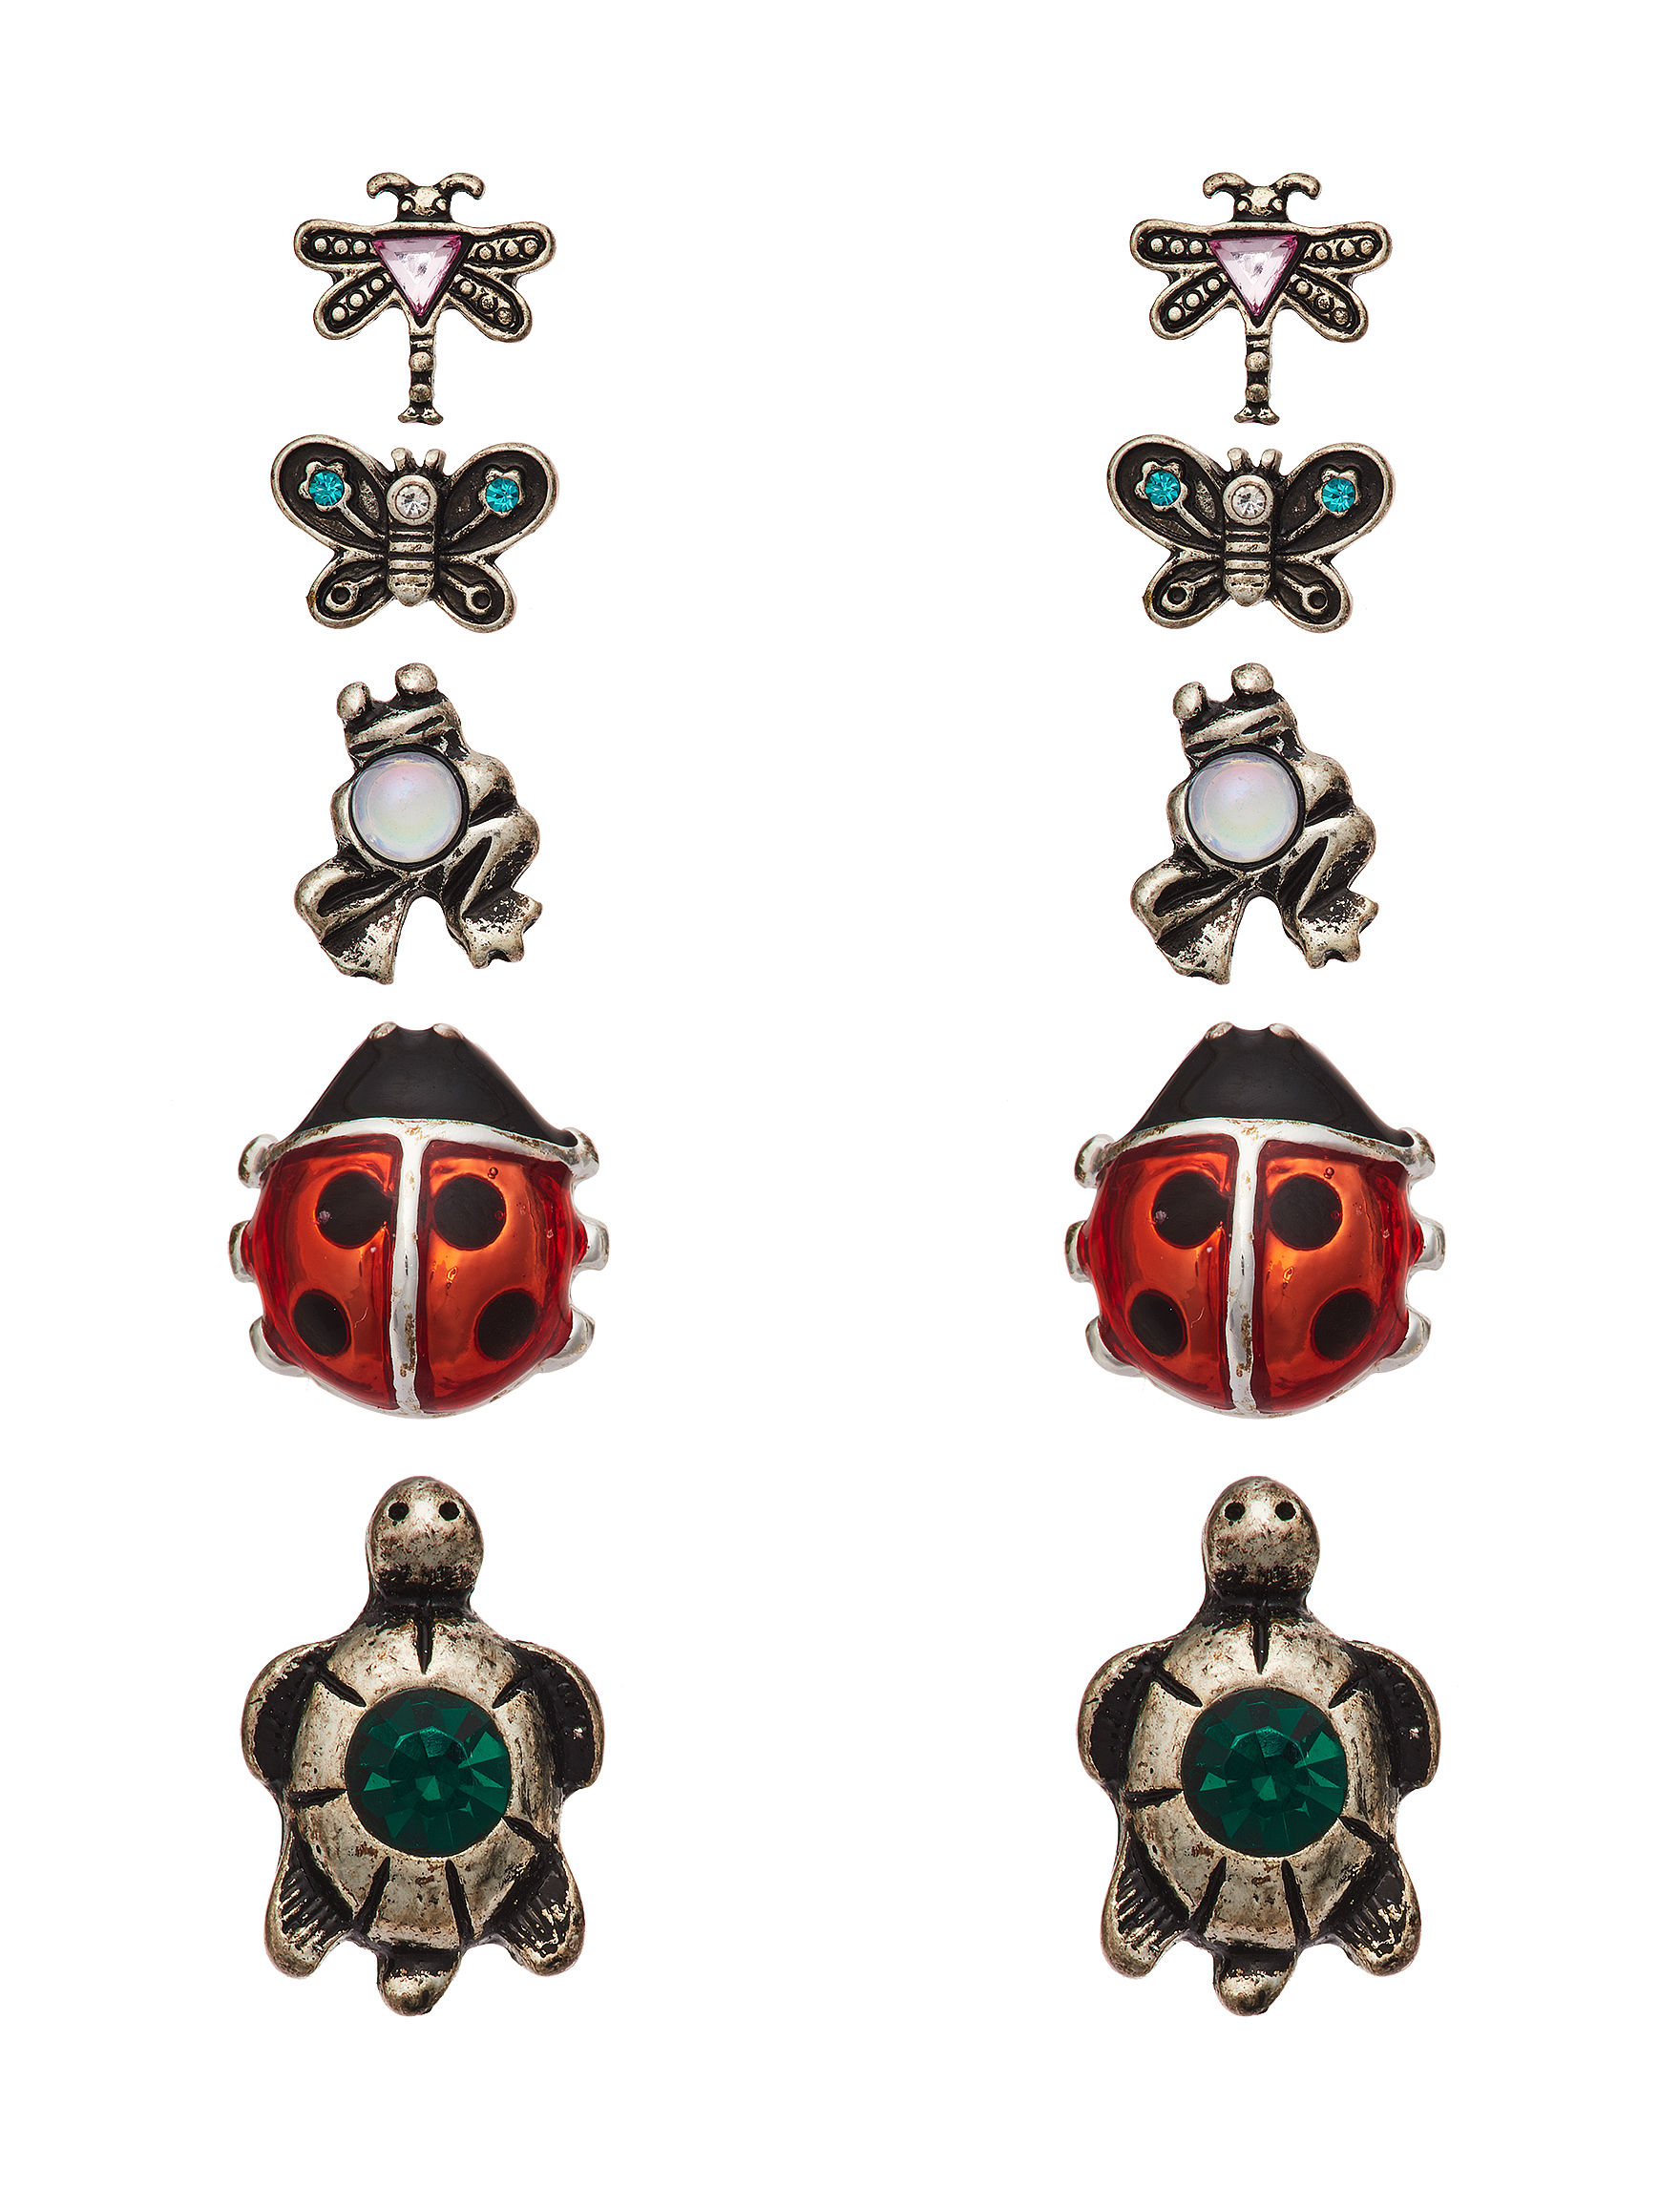 Fashion Accents Silver Studs Earrings Jewelry Sets Fashion Jewelry